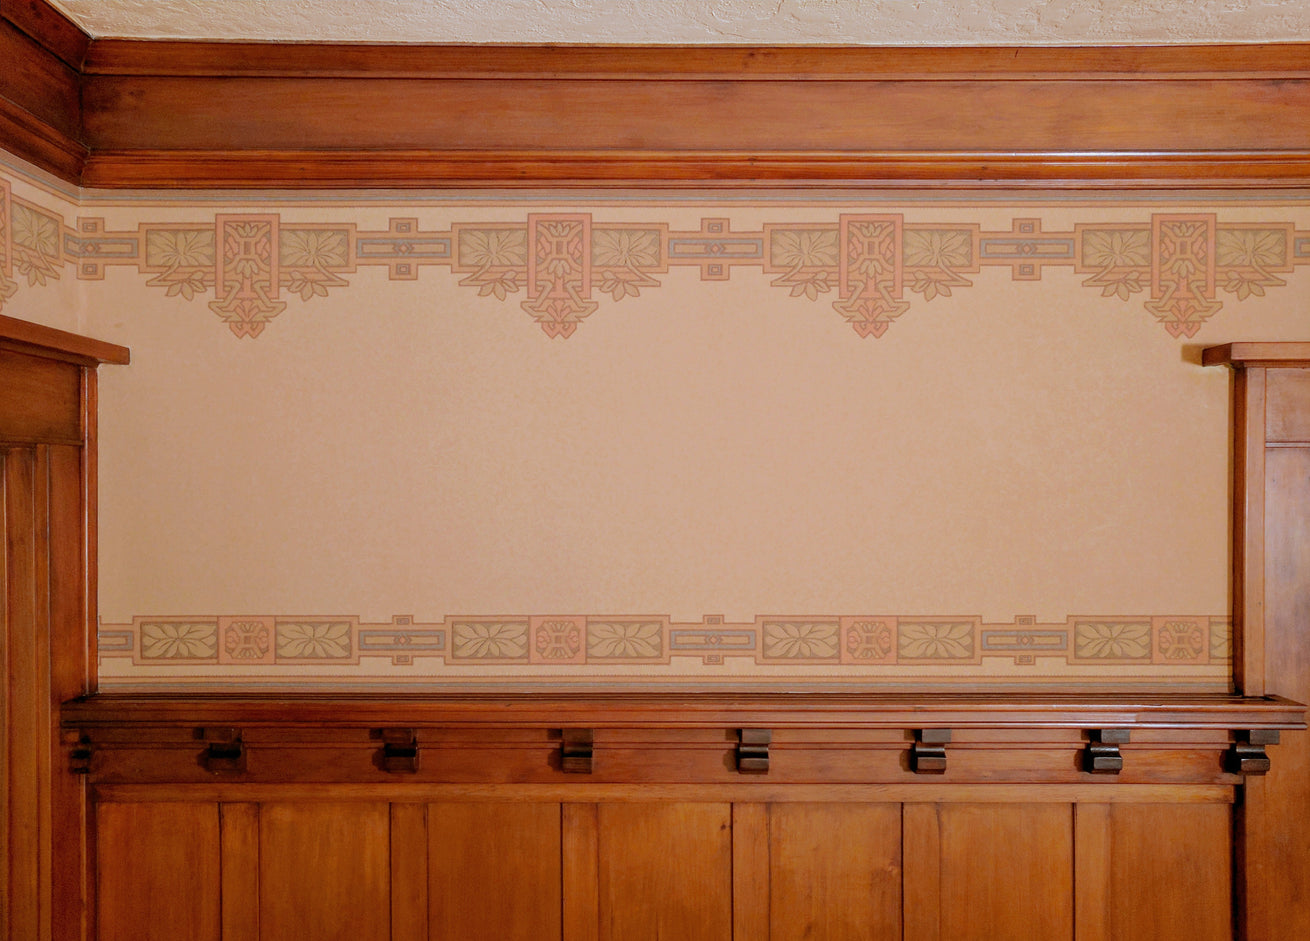 install-1910s-era-wallpaper-reproduction